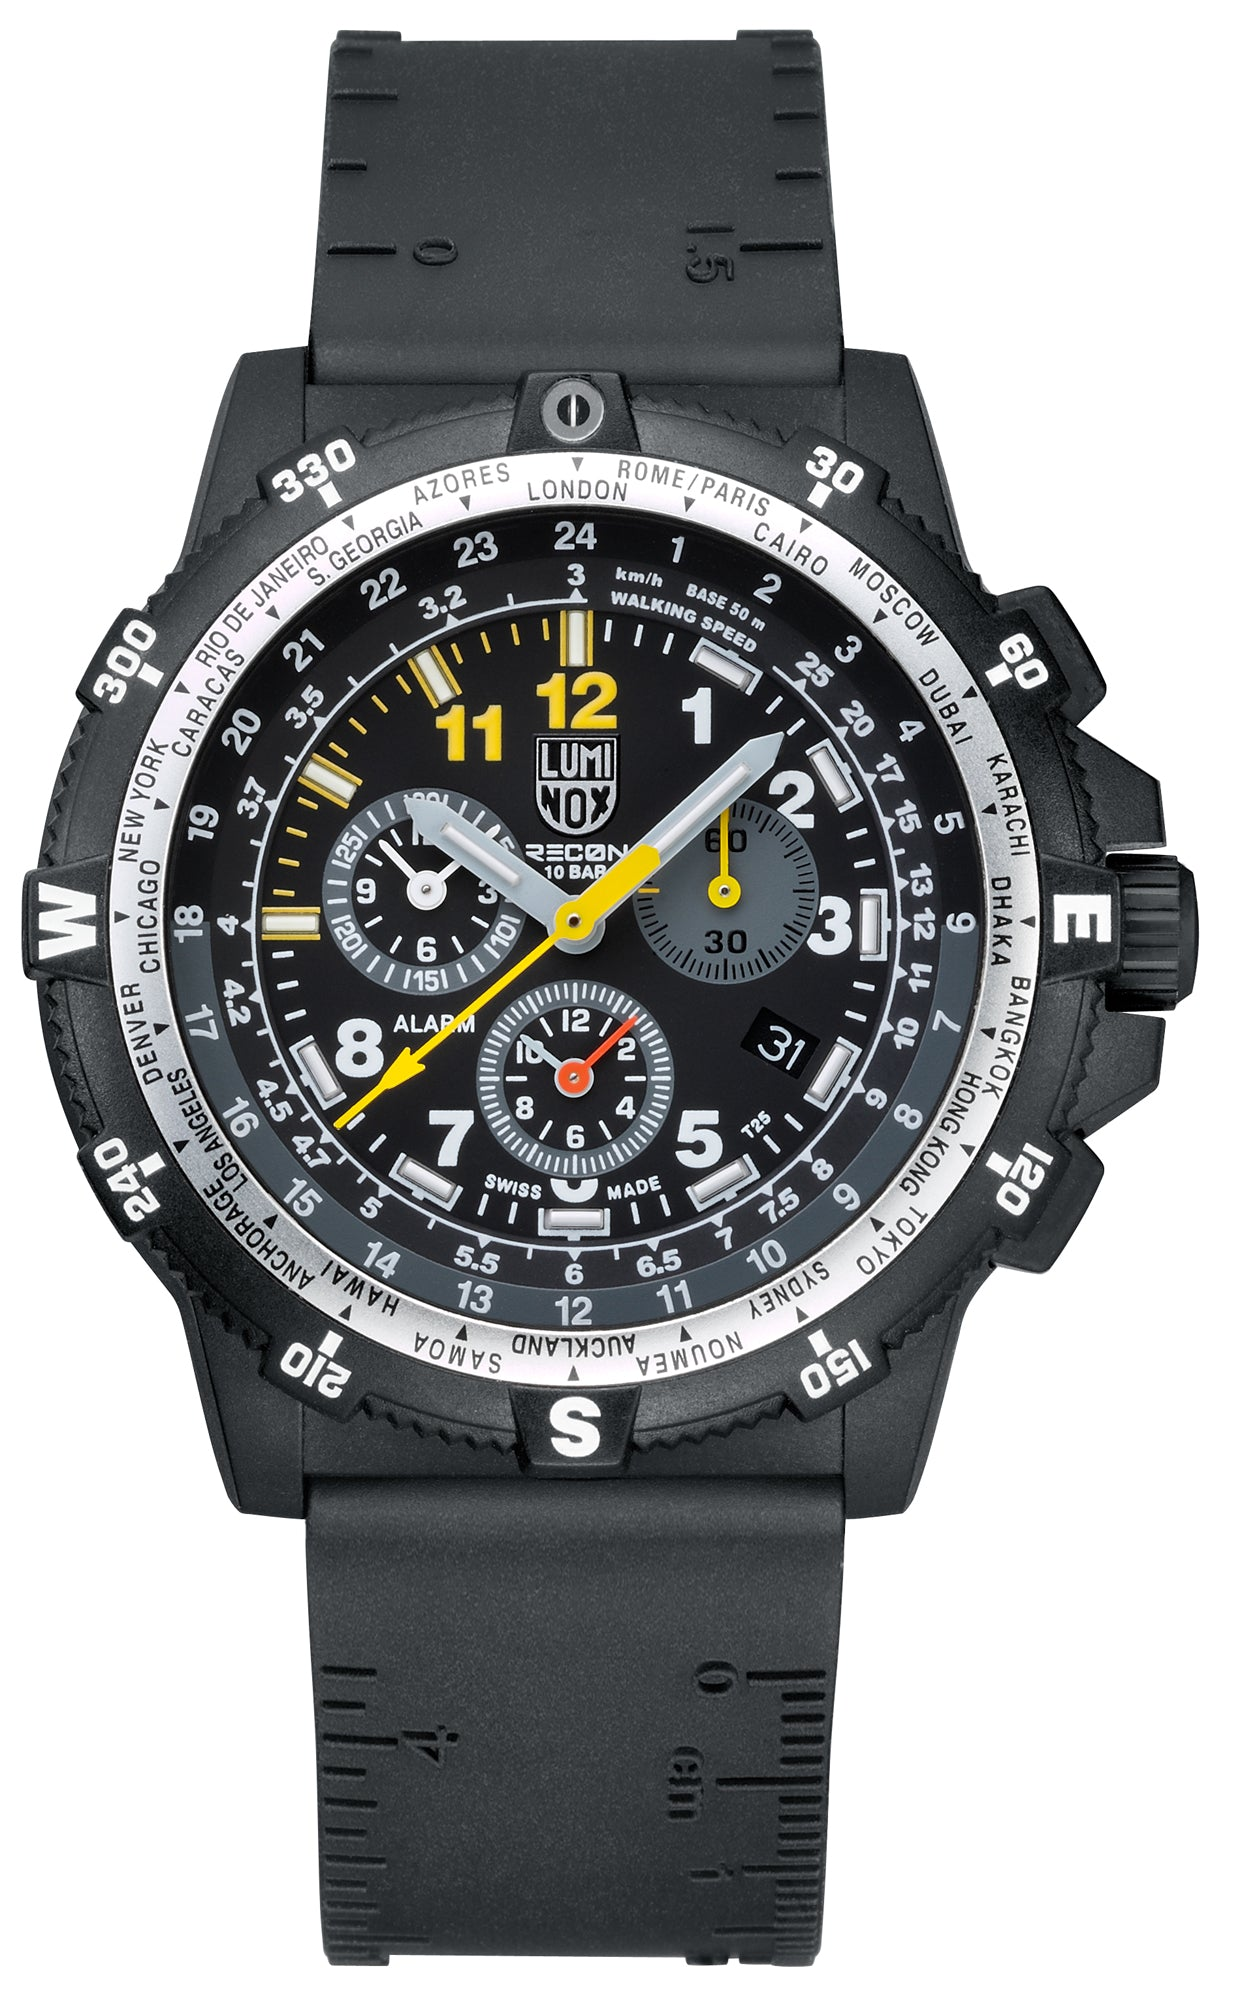 SD - RECON Team Leader Chronograph 8841.KM